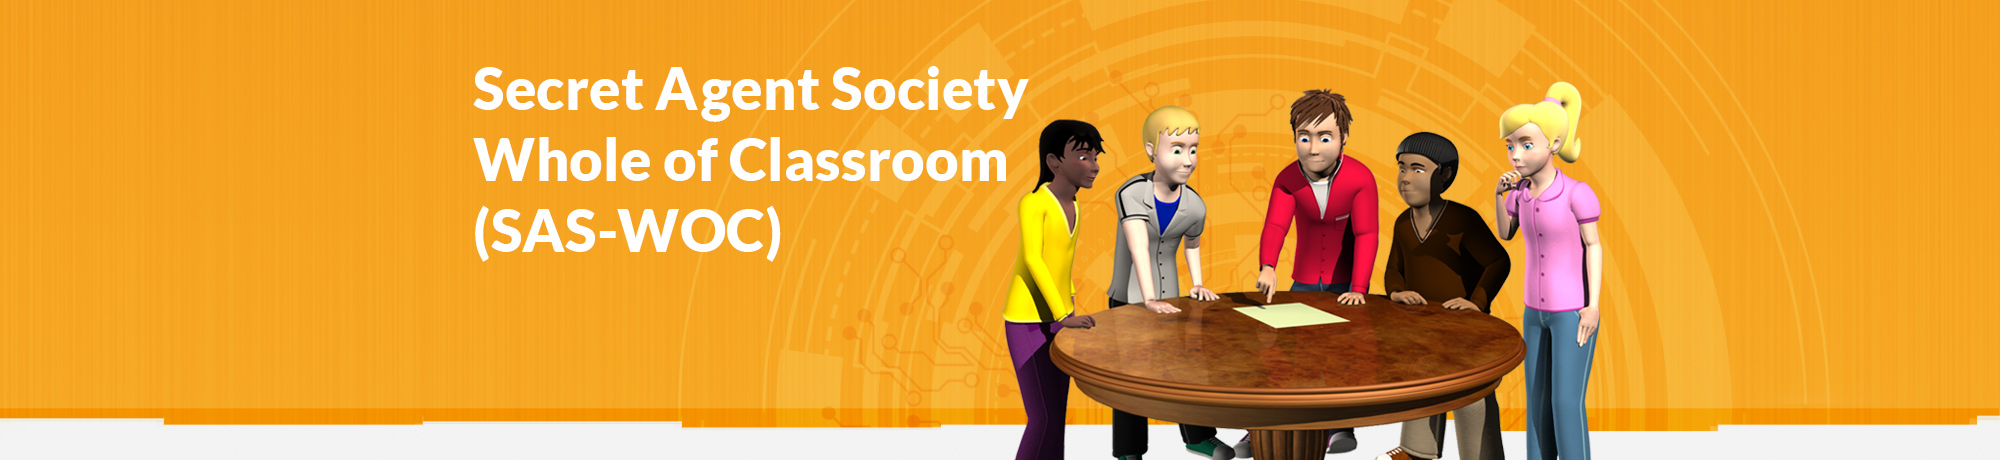 Secret Agent Society Whole of Classroom school-based research trial